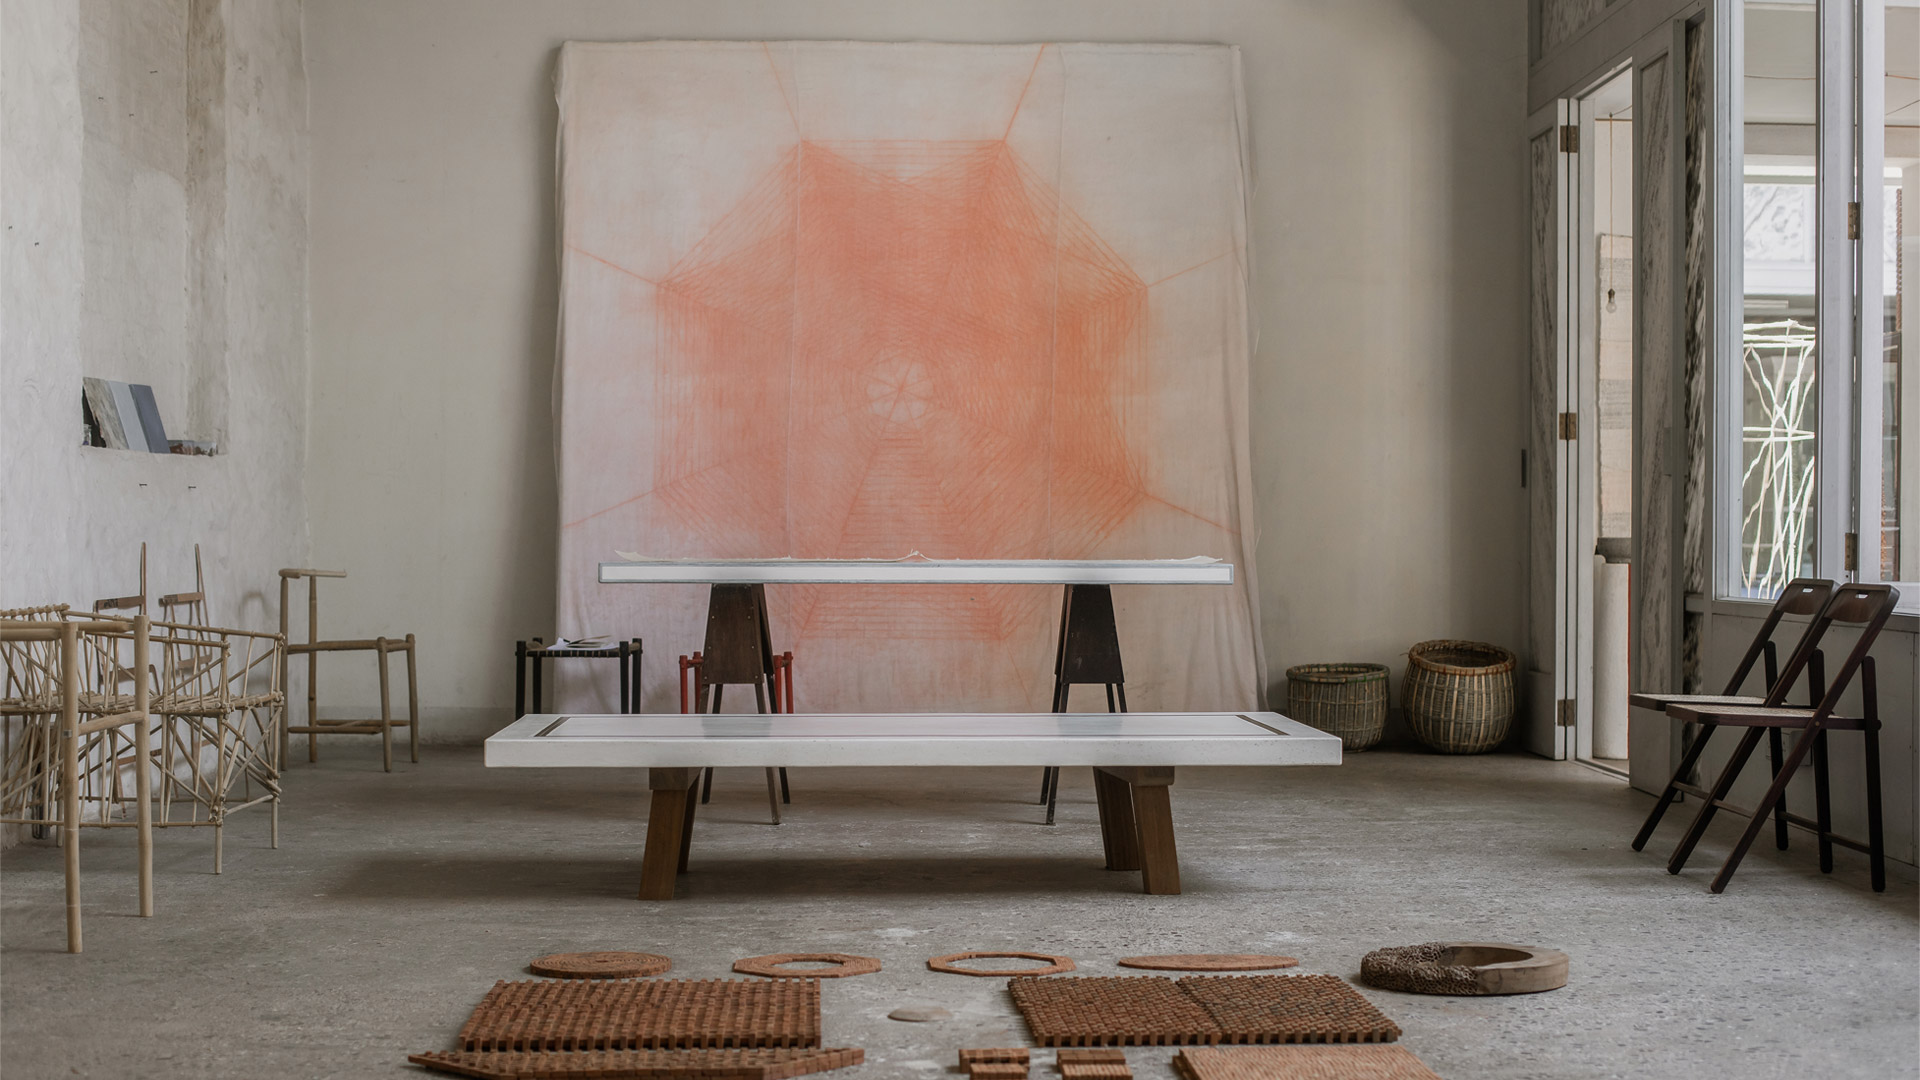 Studio Mumbai latest exhibition at gallery Maniera showcases products fashioned from rudimentary materials like stone, brick and cowdung, and subtle ones like textile, glass and Japanese washi paper.